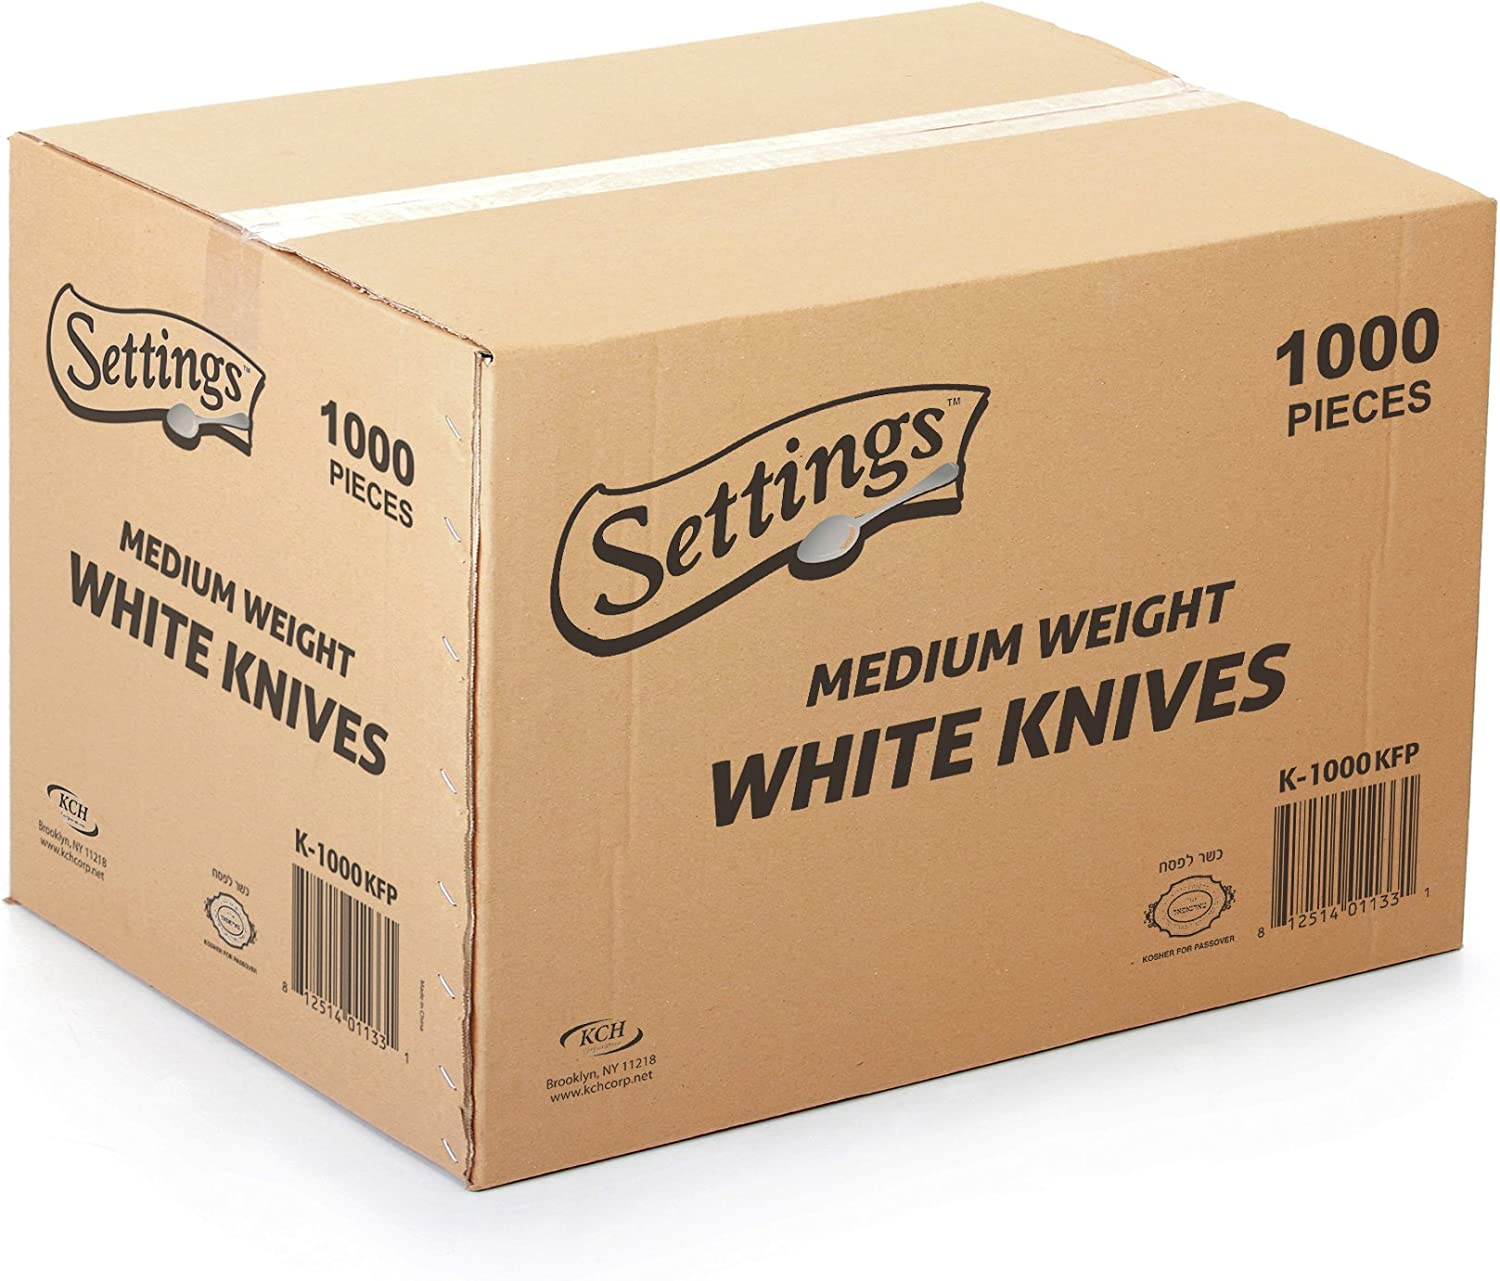 [1000 Count] Settings Plastic White Knives, Practical Disposable Cutlery, Great For Home, Office, School, Party, Picnics, Restaurant, Take-out Fast Food, Outdoor Events, Or Every Day Use, 1 Box